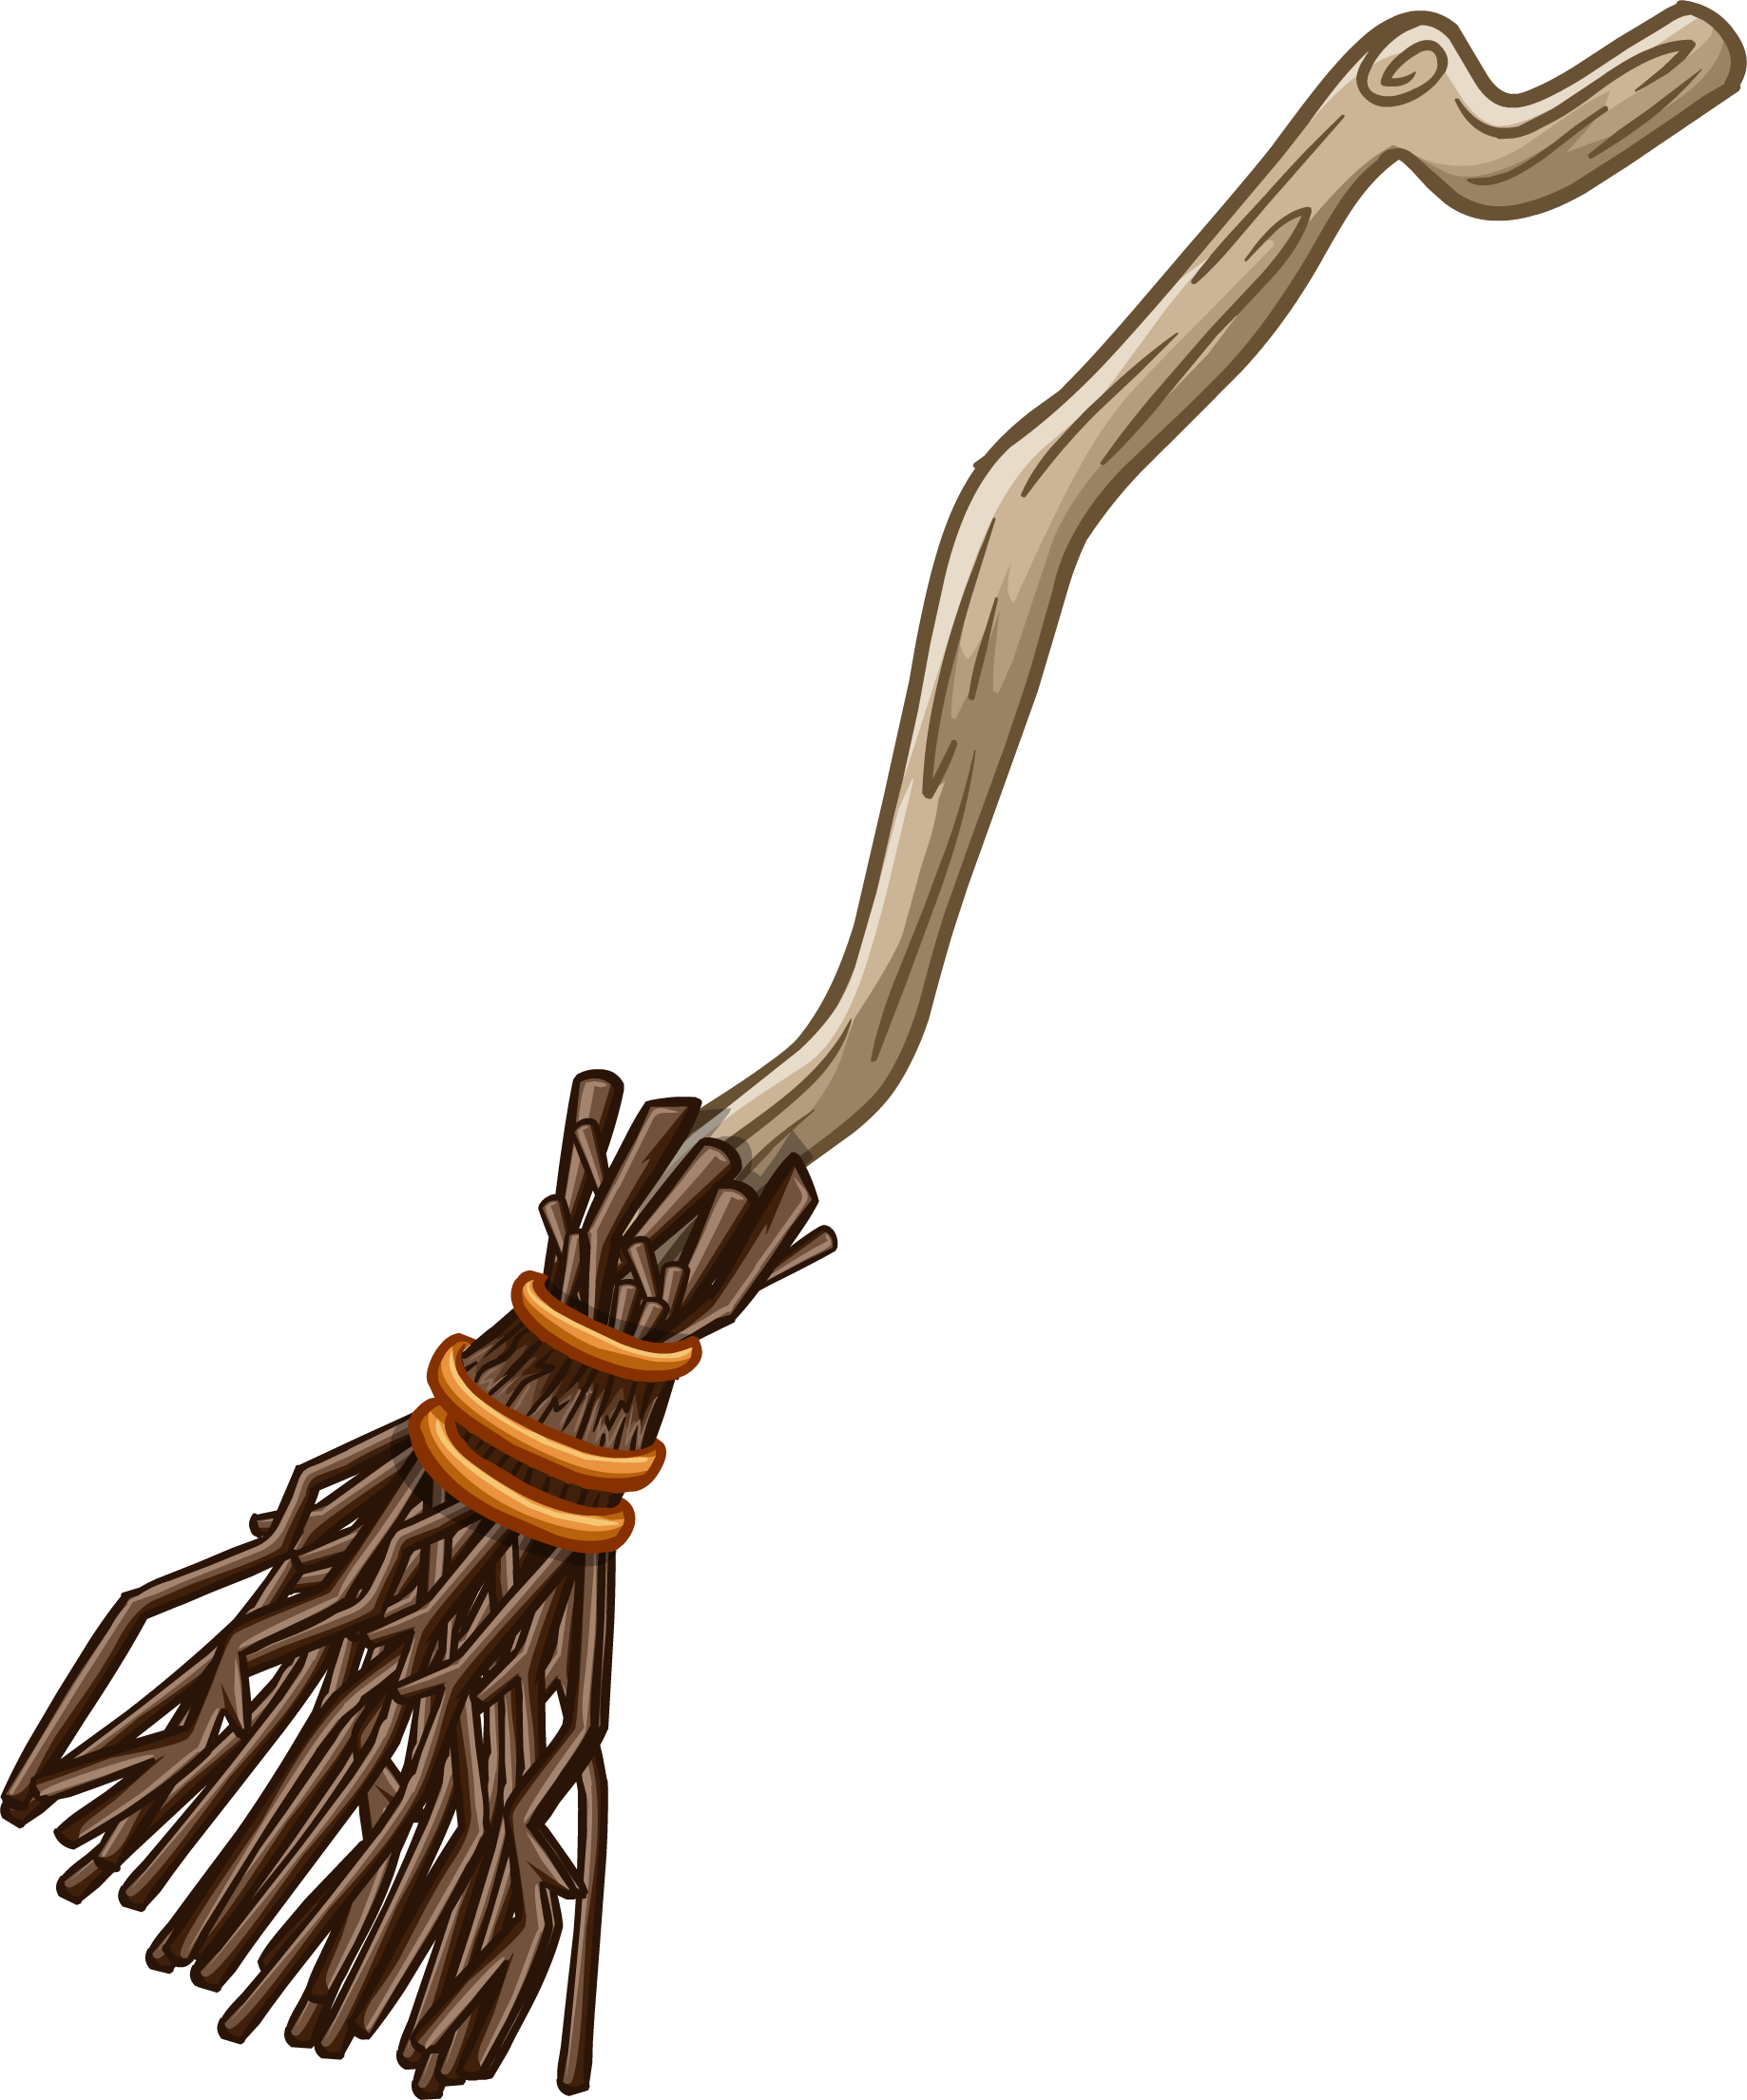 image witches broom icon club penguin wiki the #35240